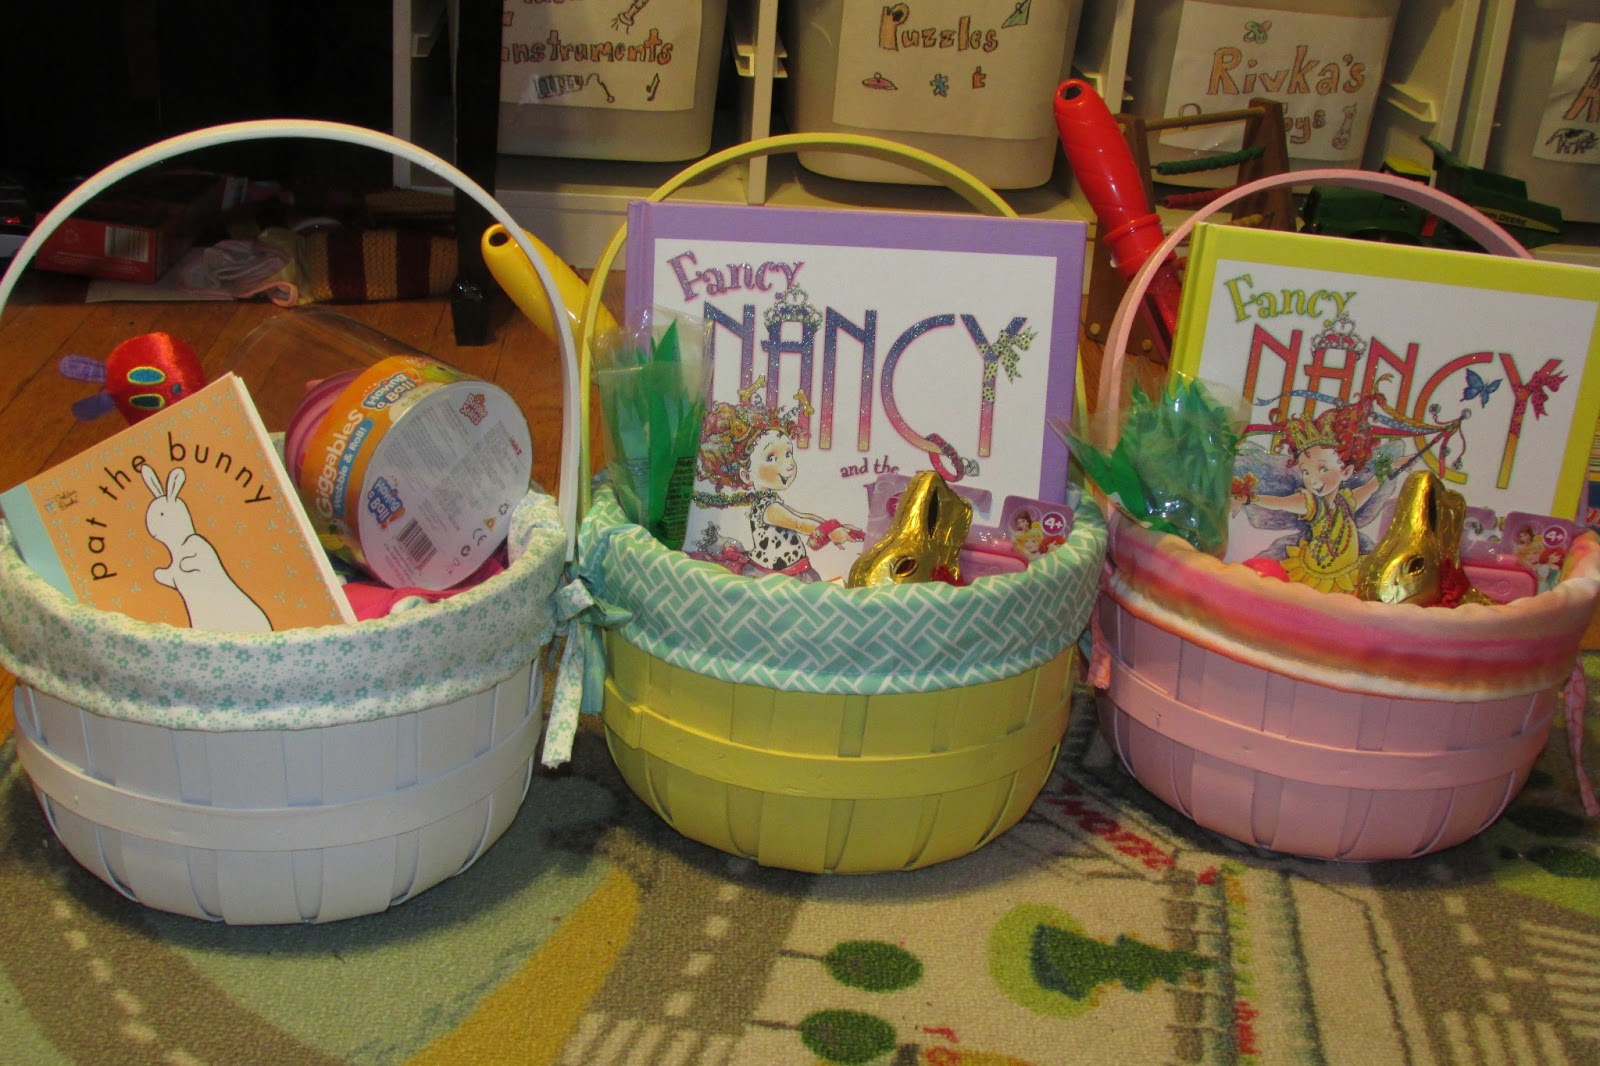 Becoming supermommy my first easter or why is that jewish clown our finished easter baskets hopefully worth my utter public humiliation negle Choice Image